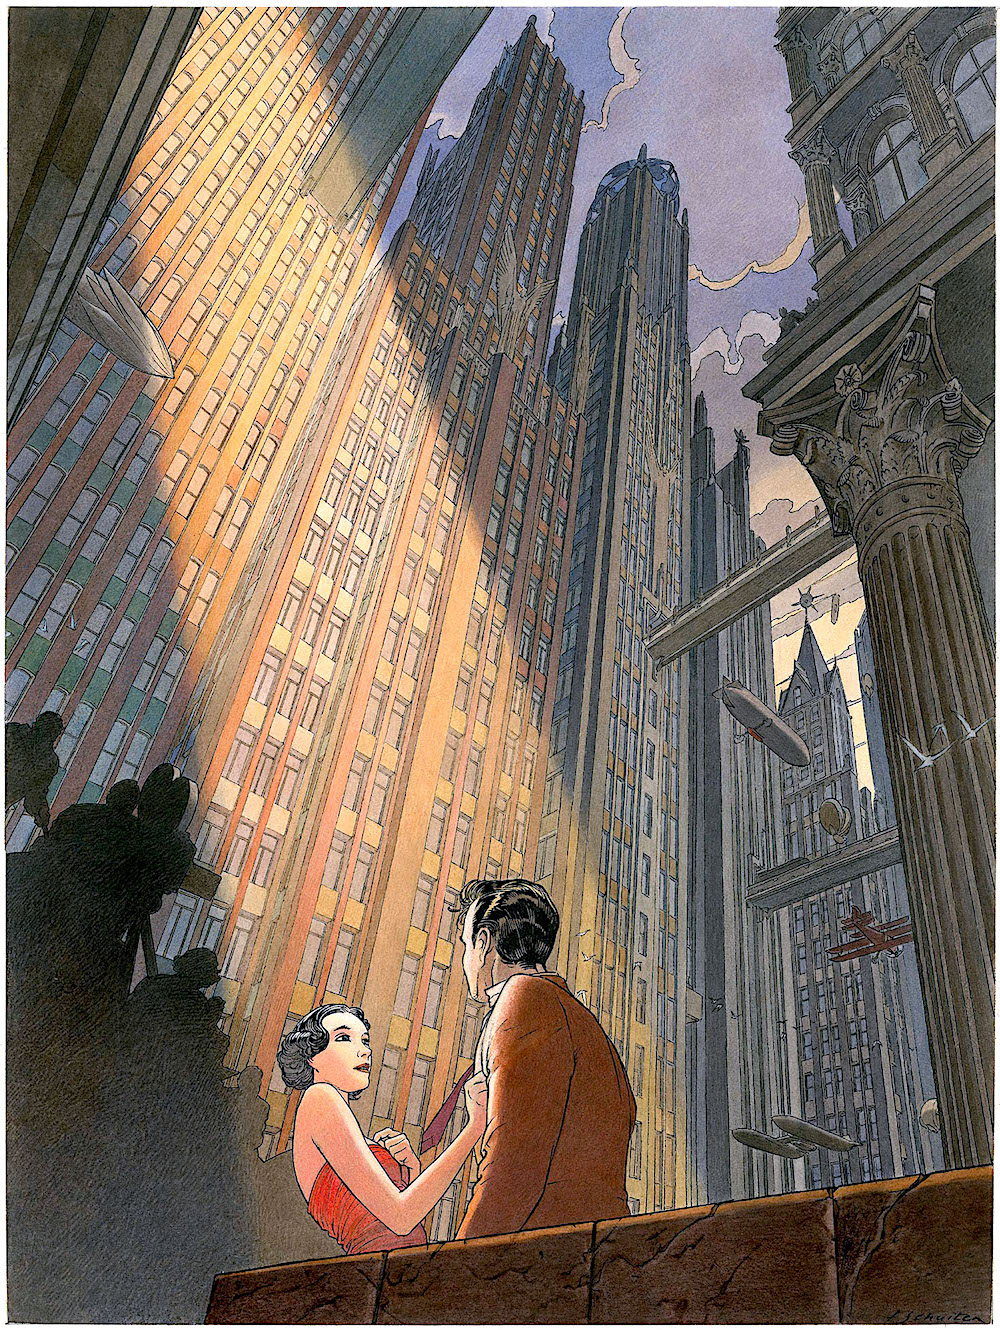 François Schuiten, a movie set in a big city, seen from a worms-eye view